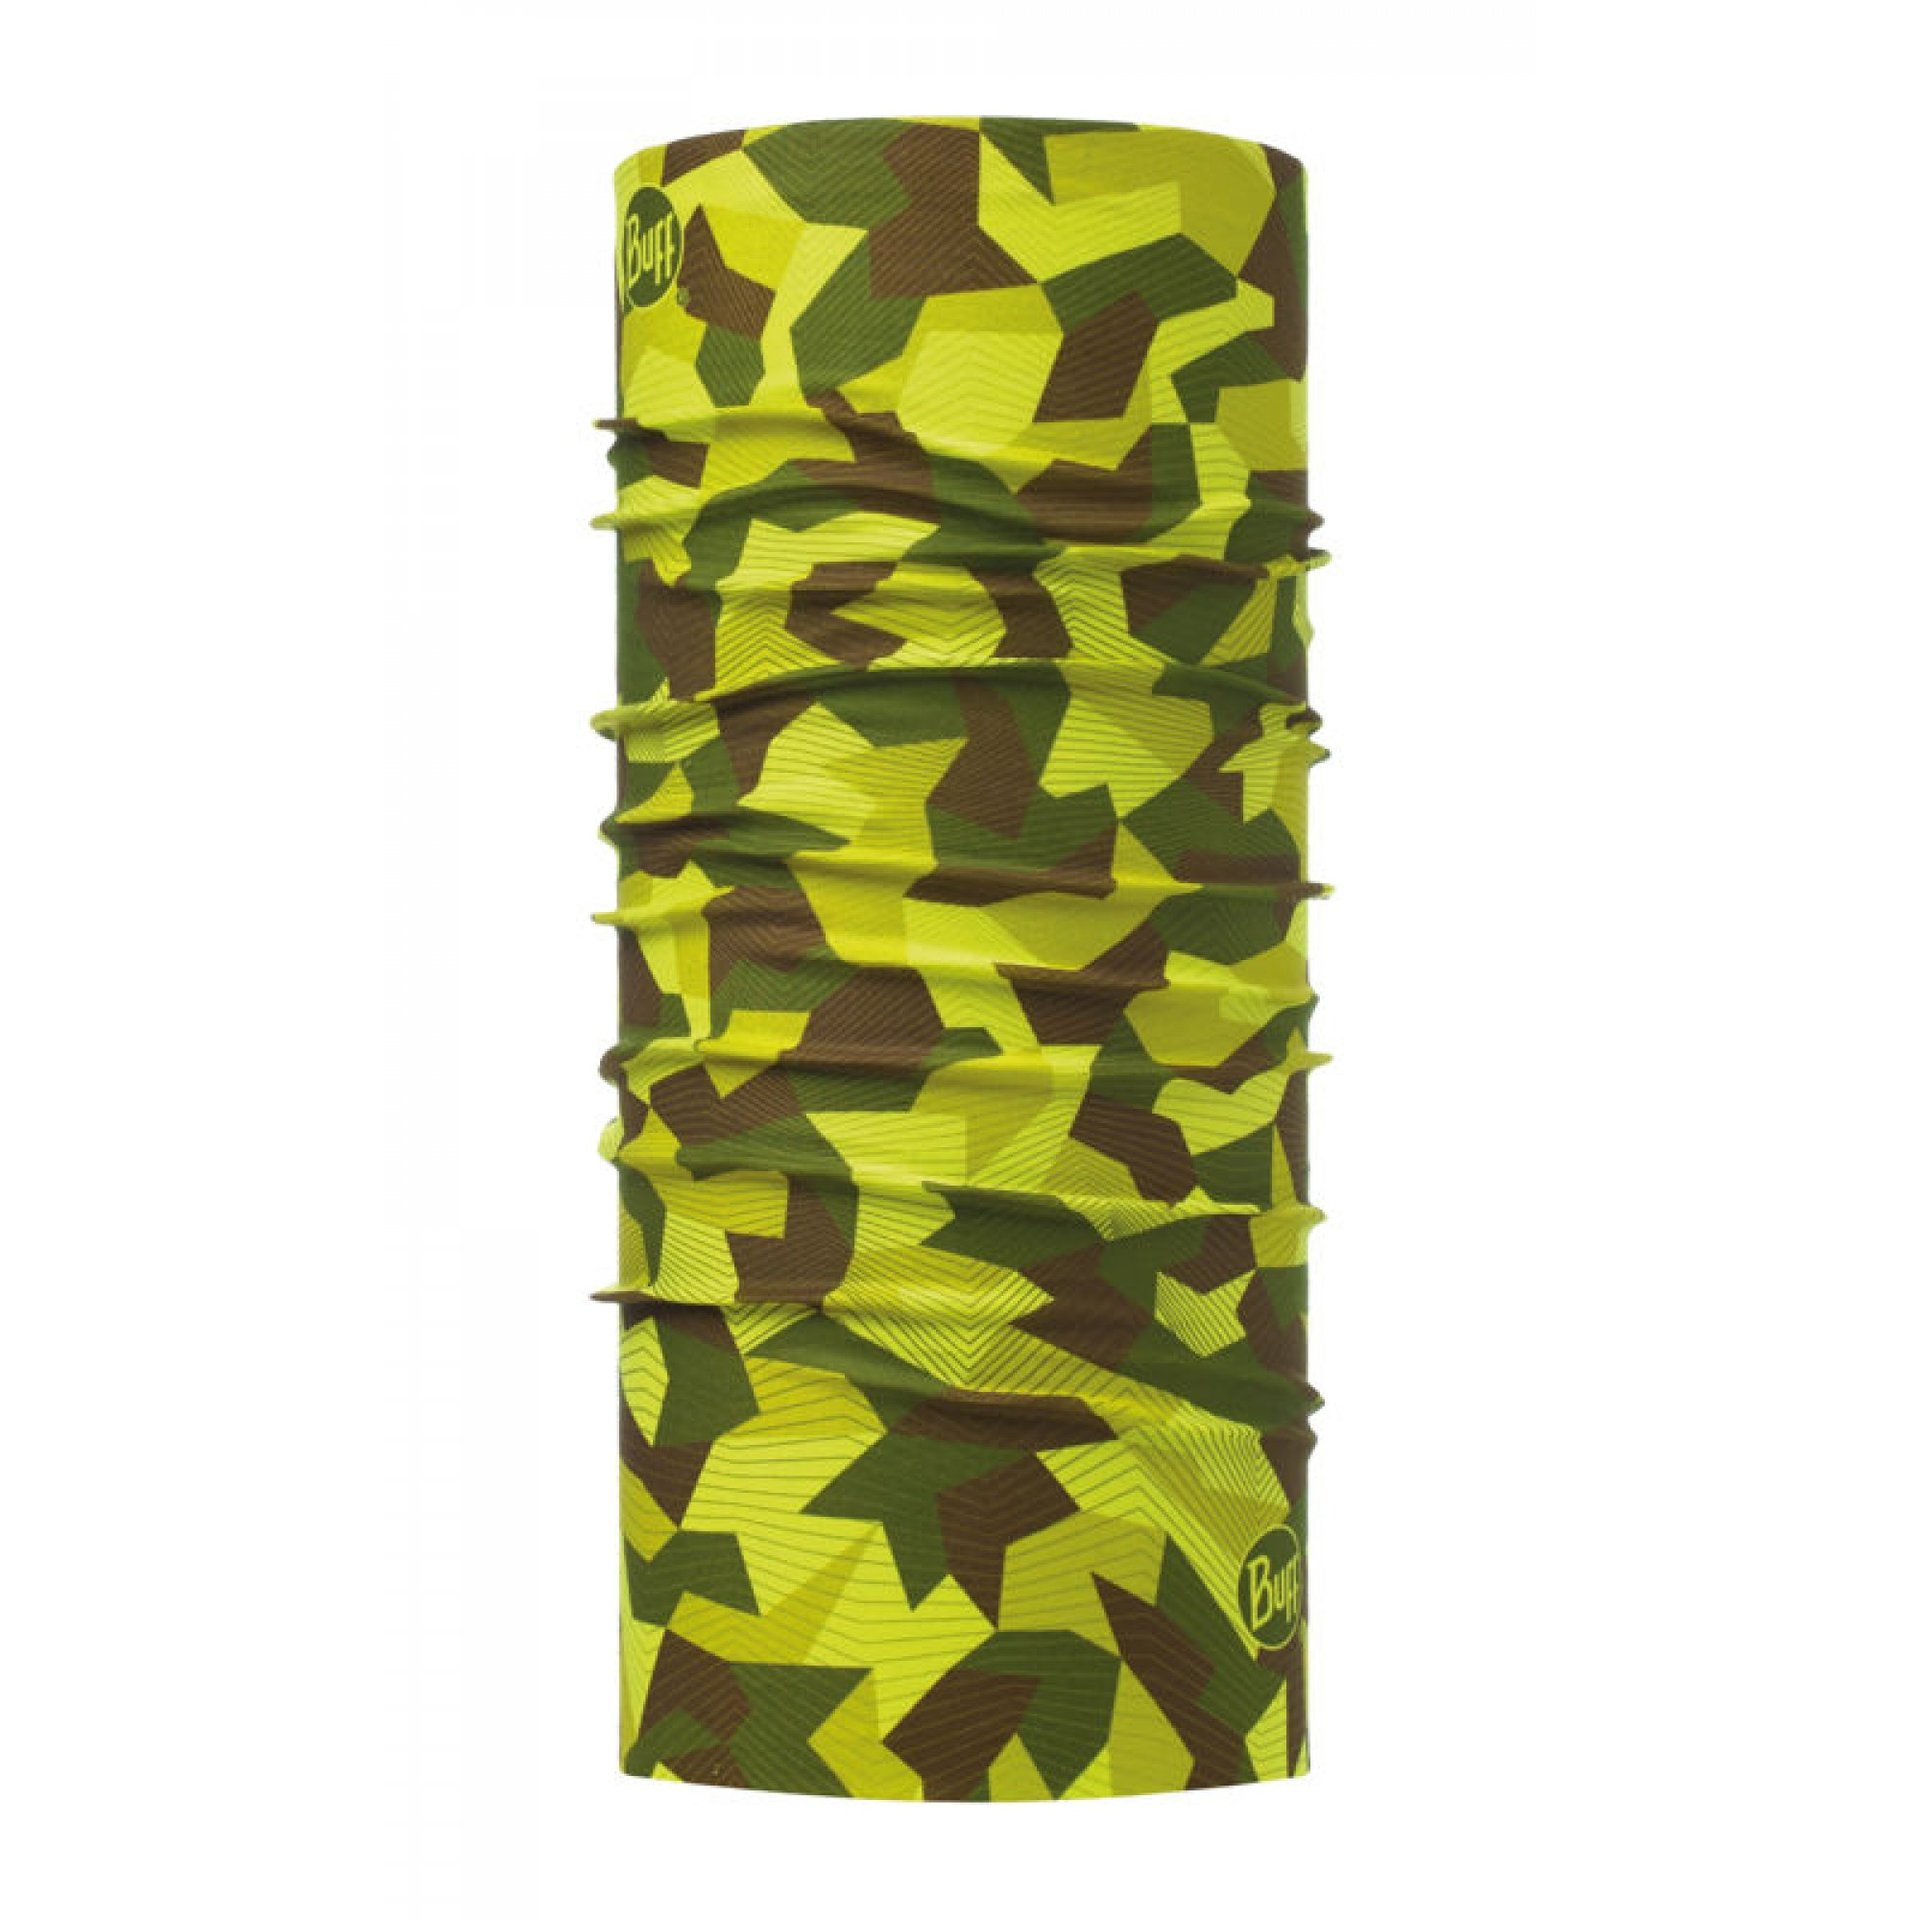 ORIGINAL US BLOCK CAMO GREEN